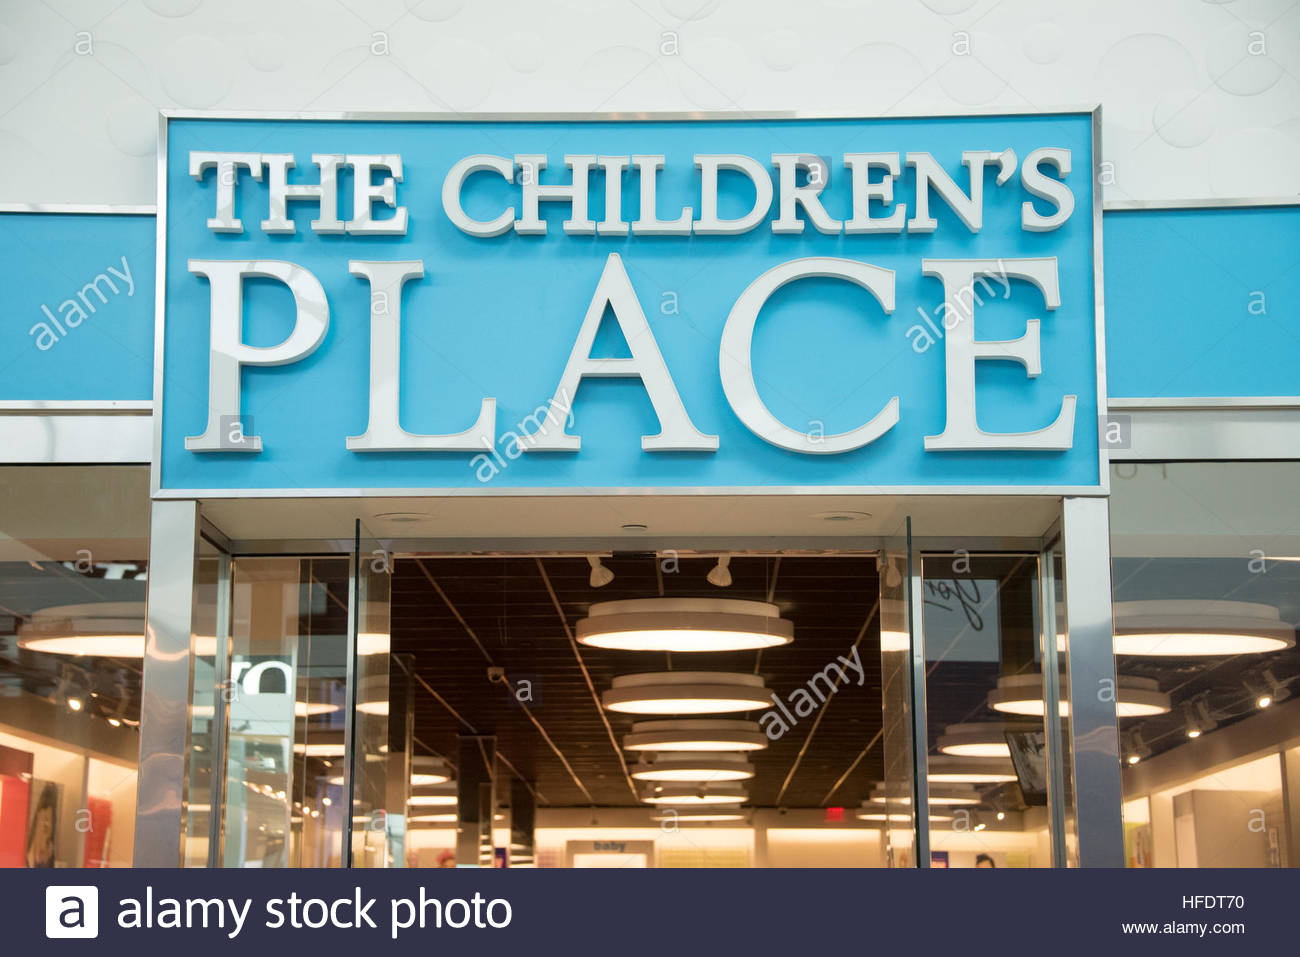 23d5d0755310 The Children's Place store entrance and signage. They are an American  specialty retailer of children's apparel and accessories.